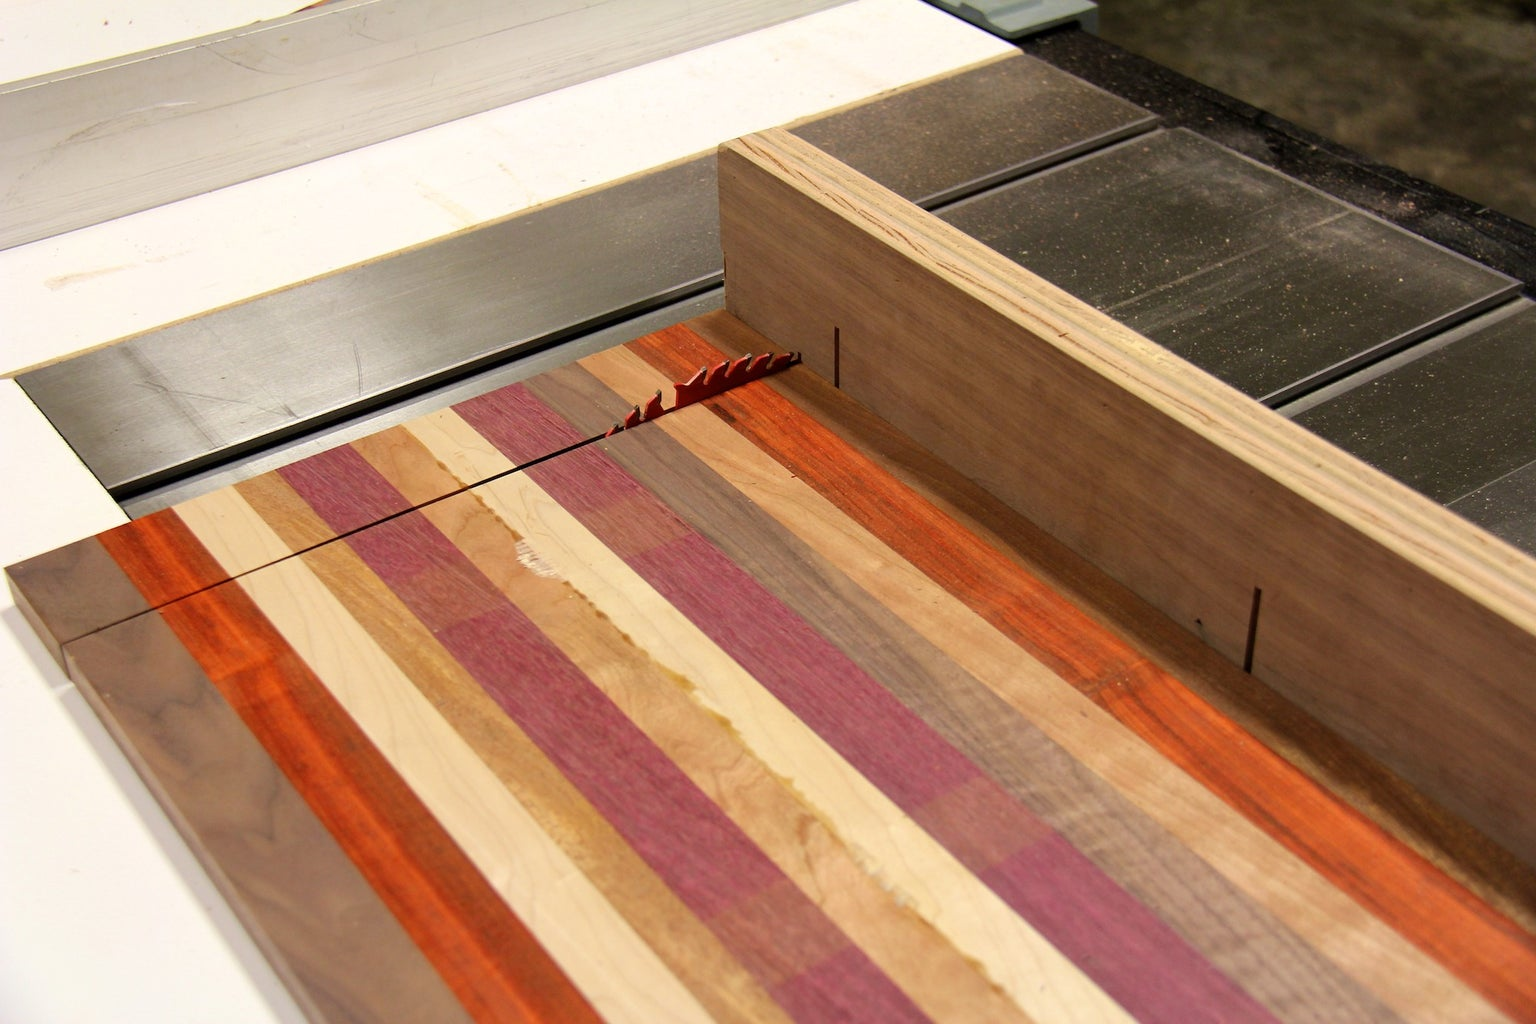 Make Stock Material and Cut Off a Strip